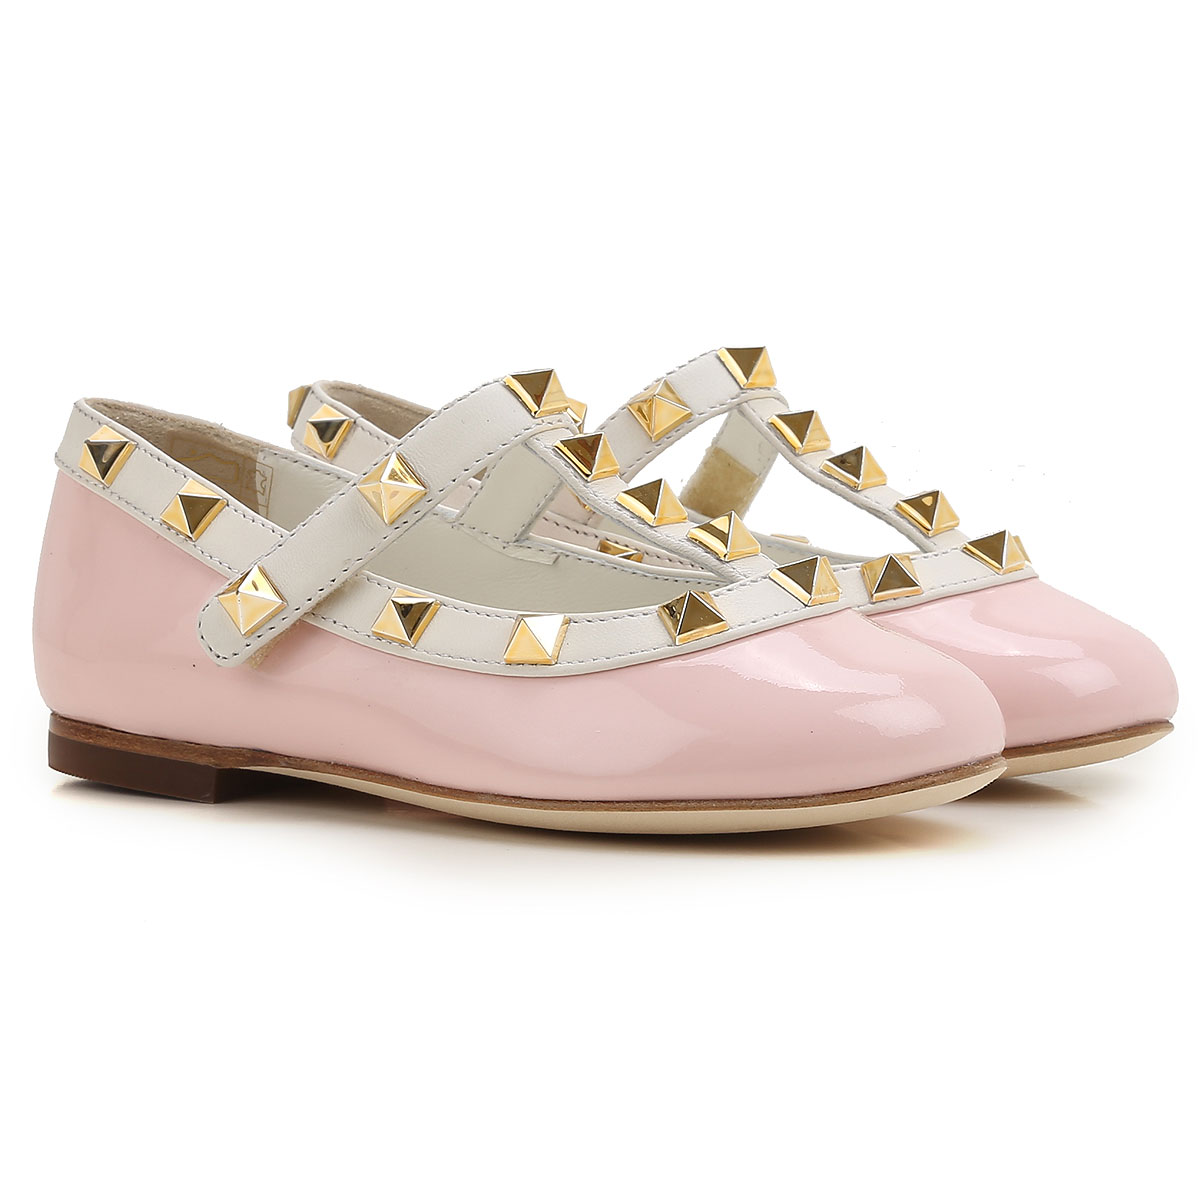 Image of Prosperine Kids Shoes for Girls, Pink, Patent Leather, 2017, 24 25 26 28 29 30 31 32 33 34 35